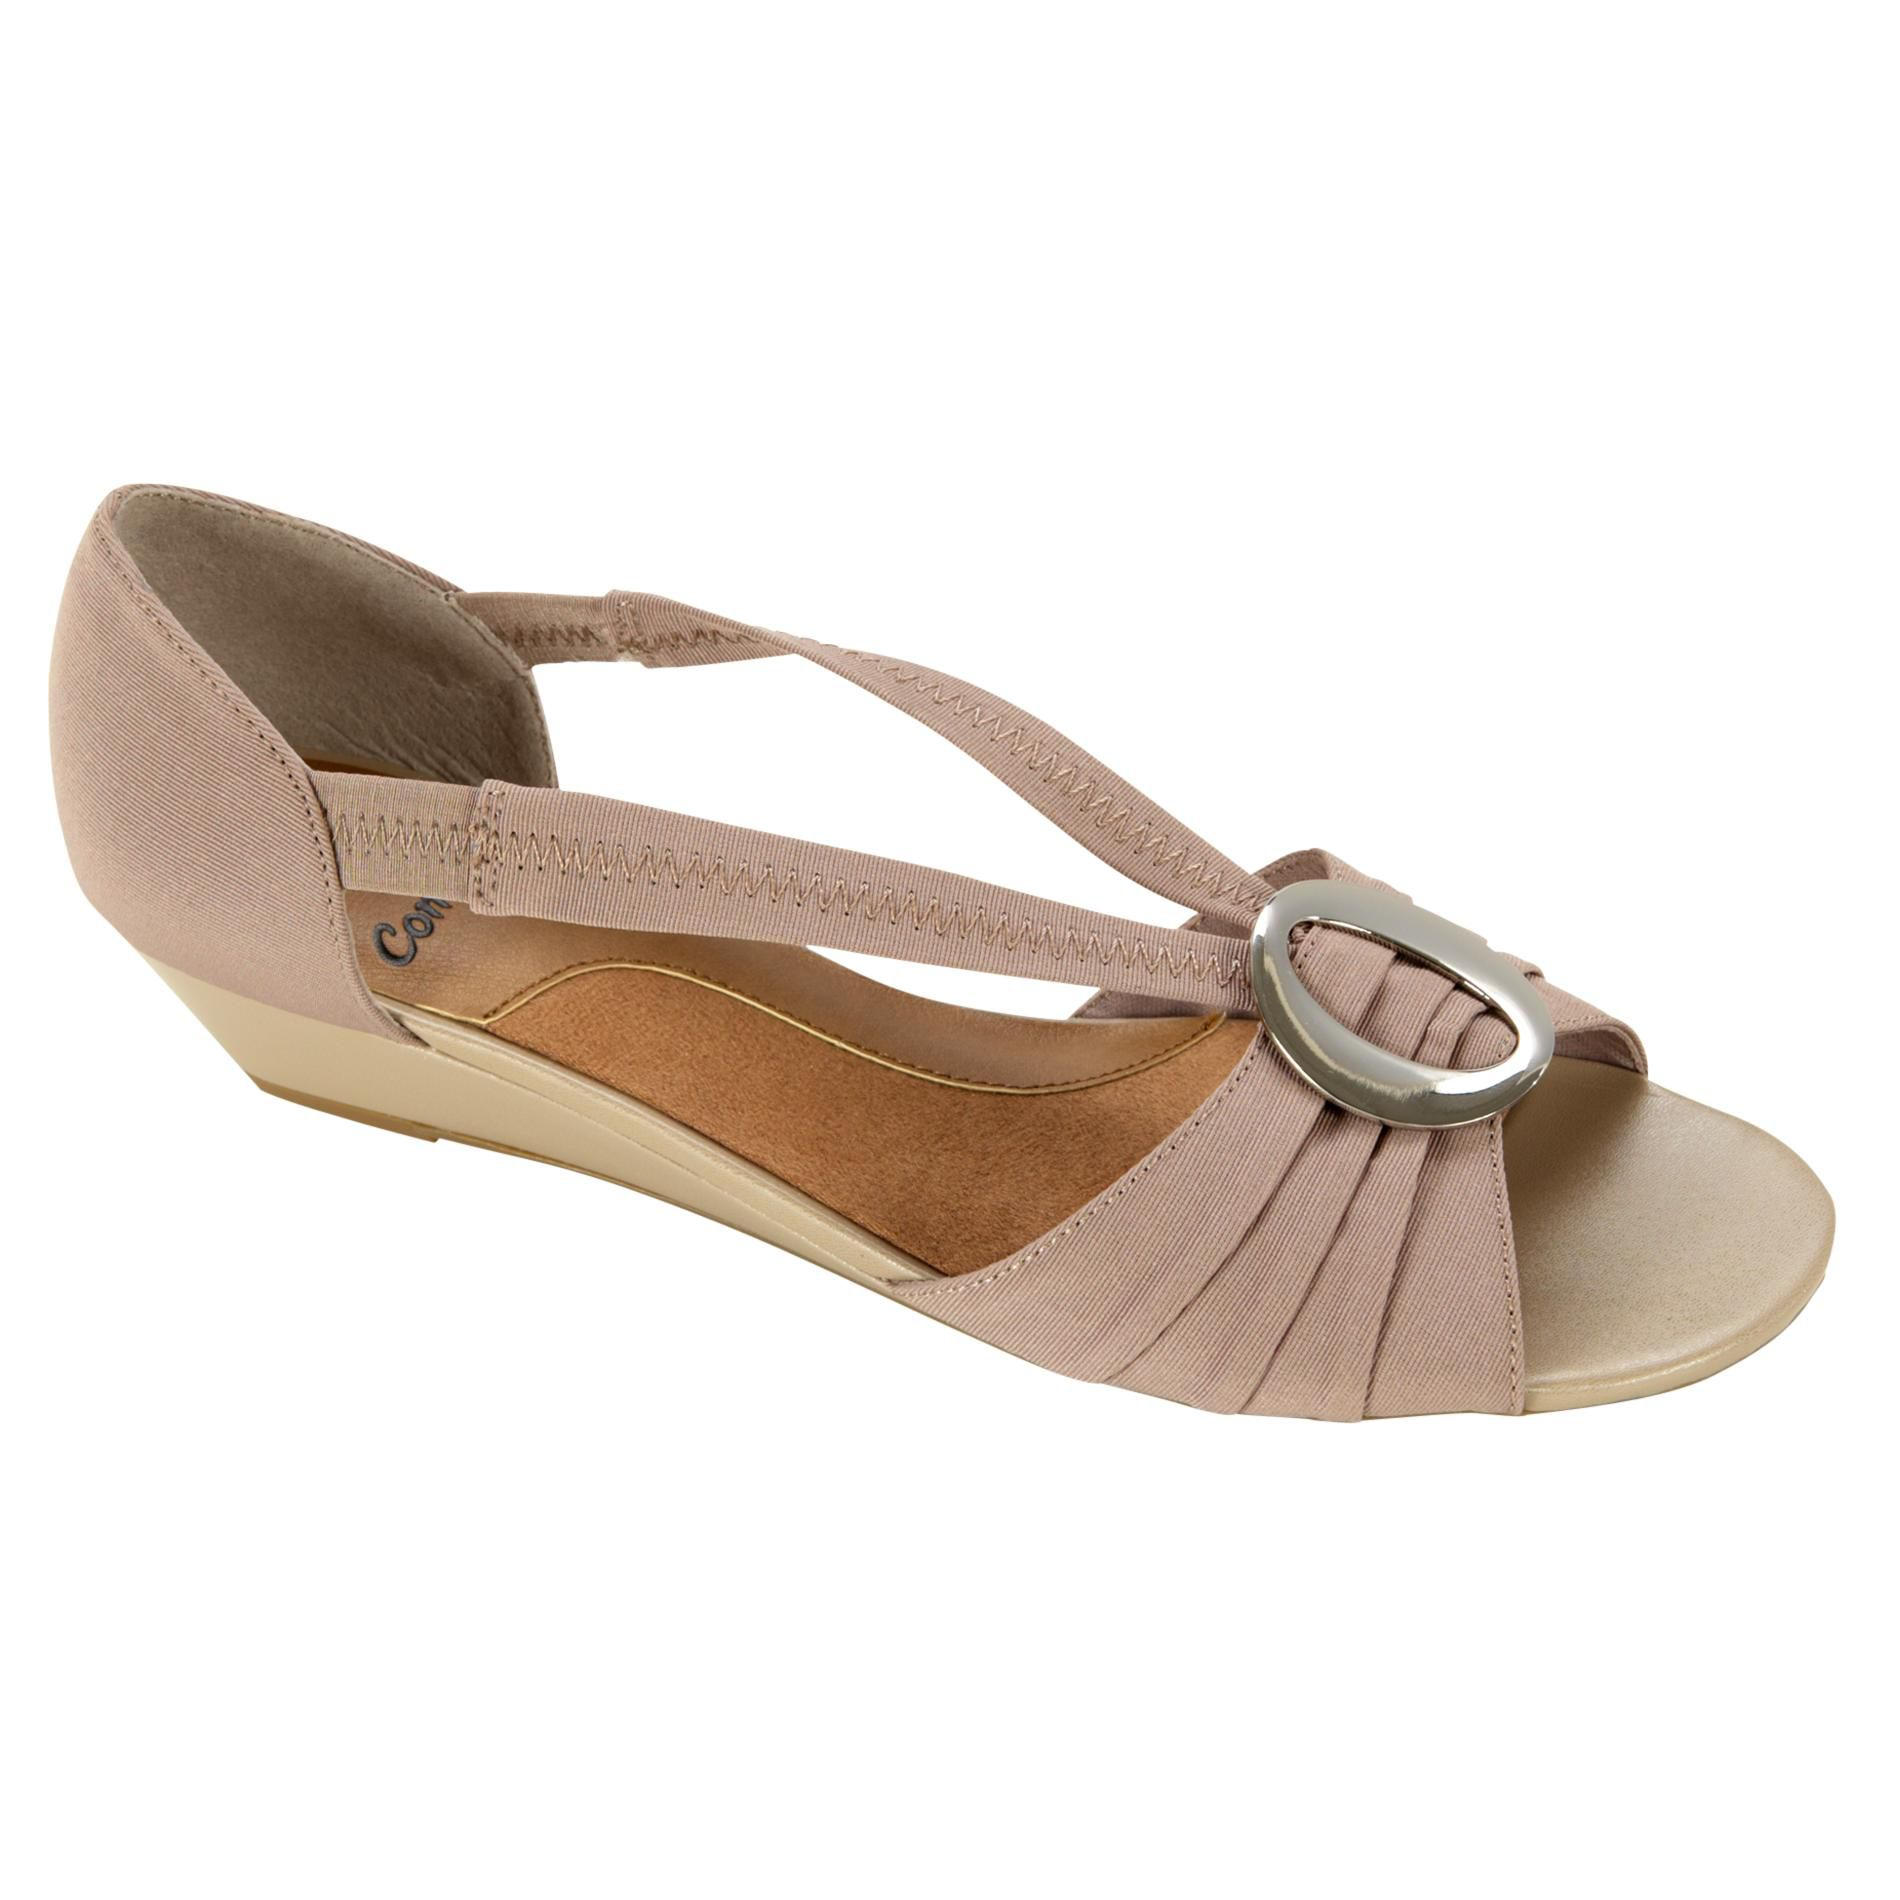 Women's Casual Shoe Reese - Tan